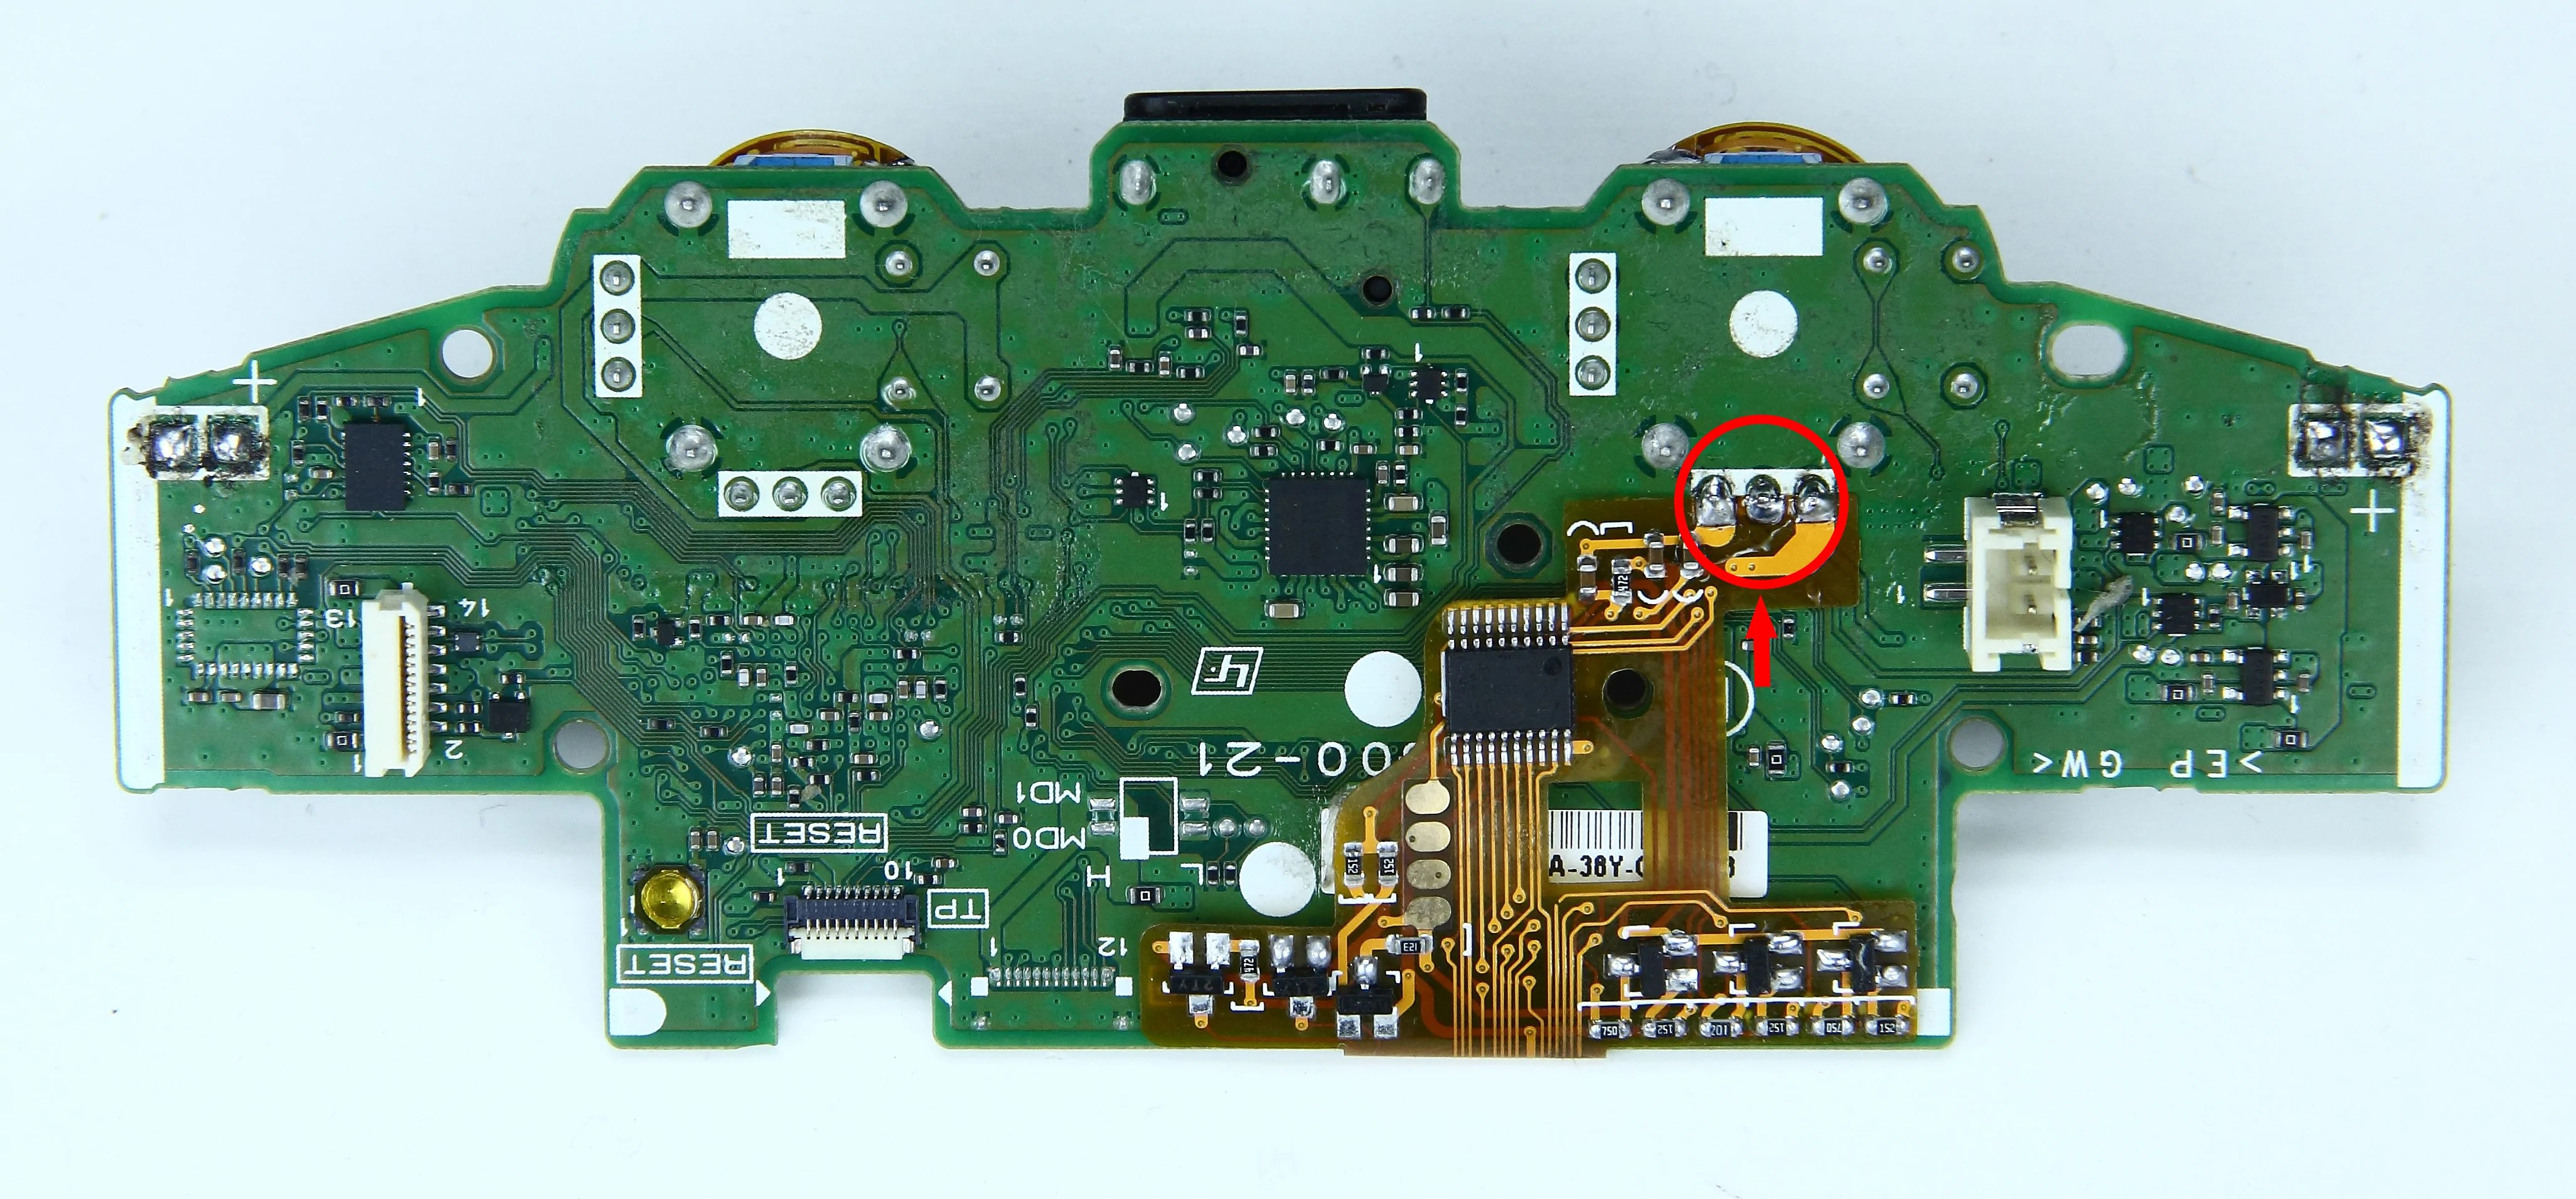 studio gyokimae arduino ps controller interface dualshock pcb scans playstation to usb wiring diagram diagram use on pc and tecnomente of retro adapter  [ 4105 x 1911 Pixel ]